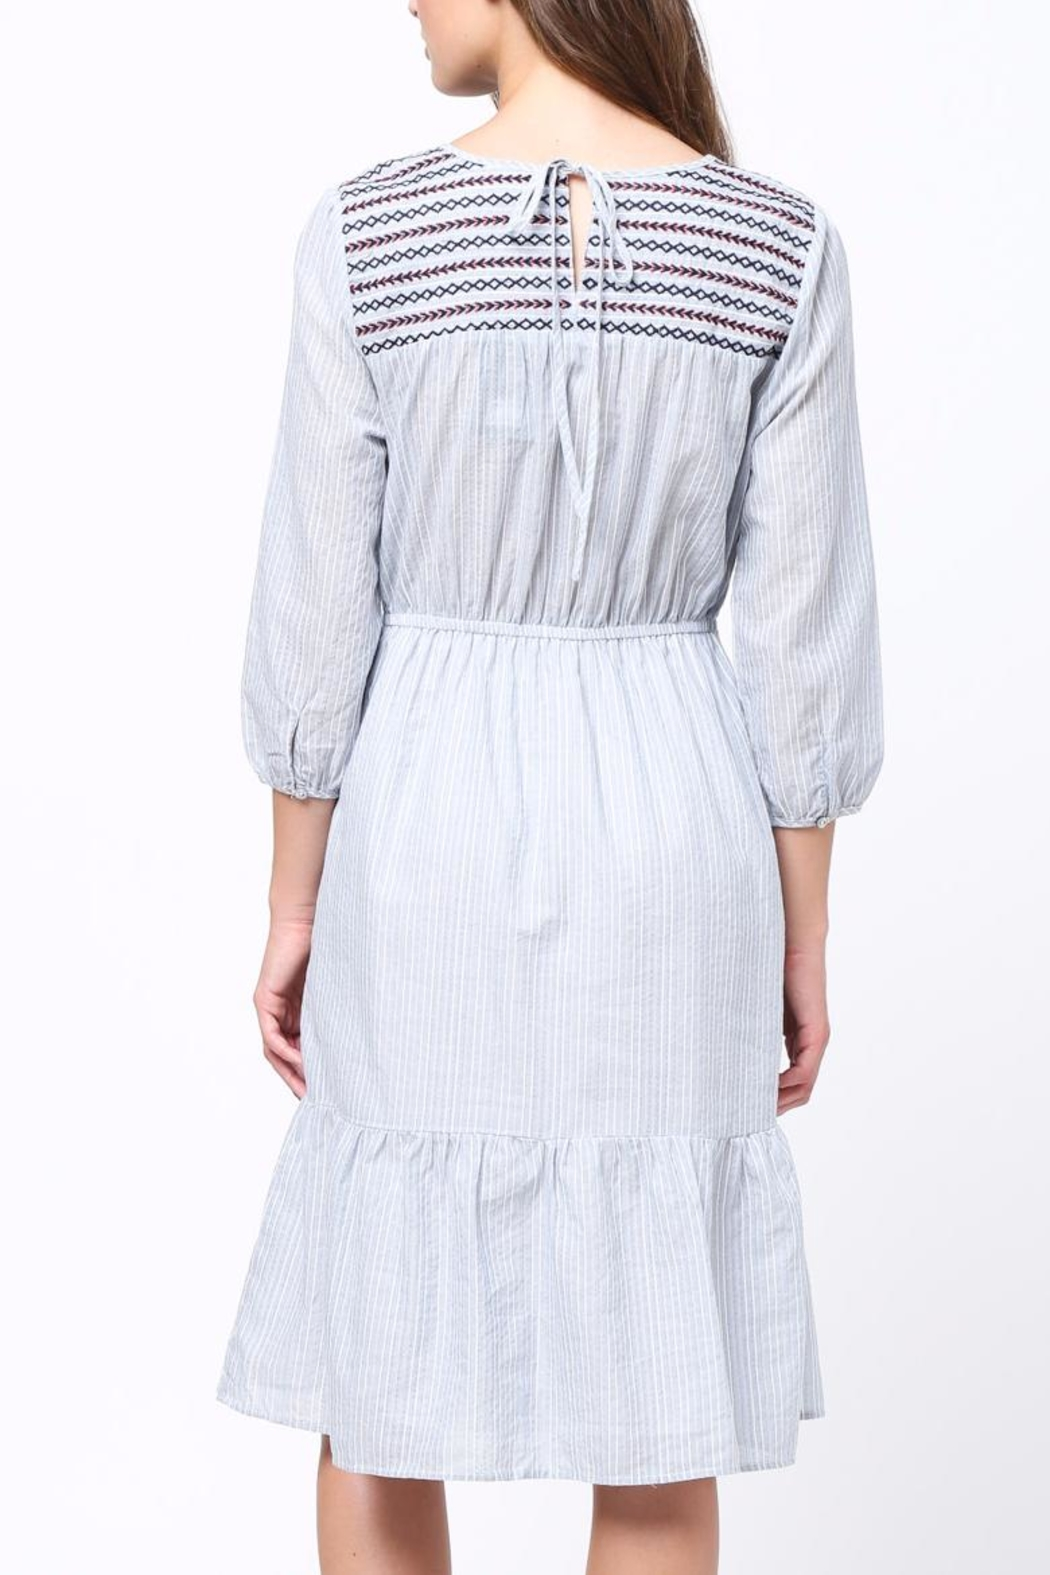 Movint Embriodery Shirring Dress - Front Full Image